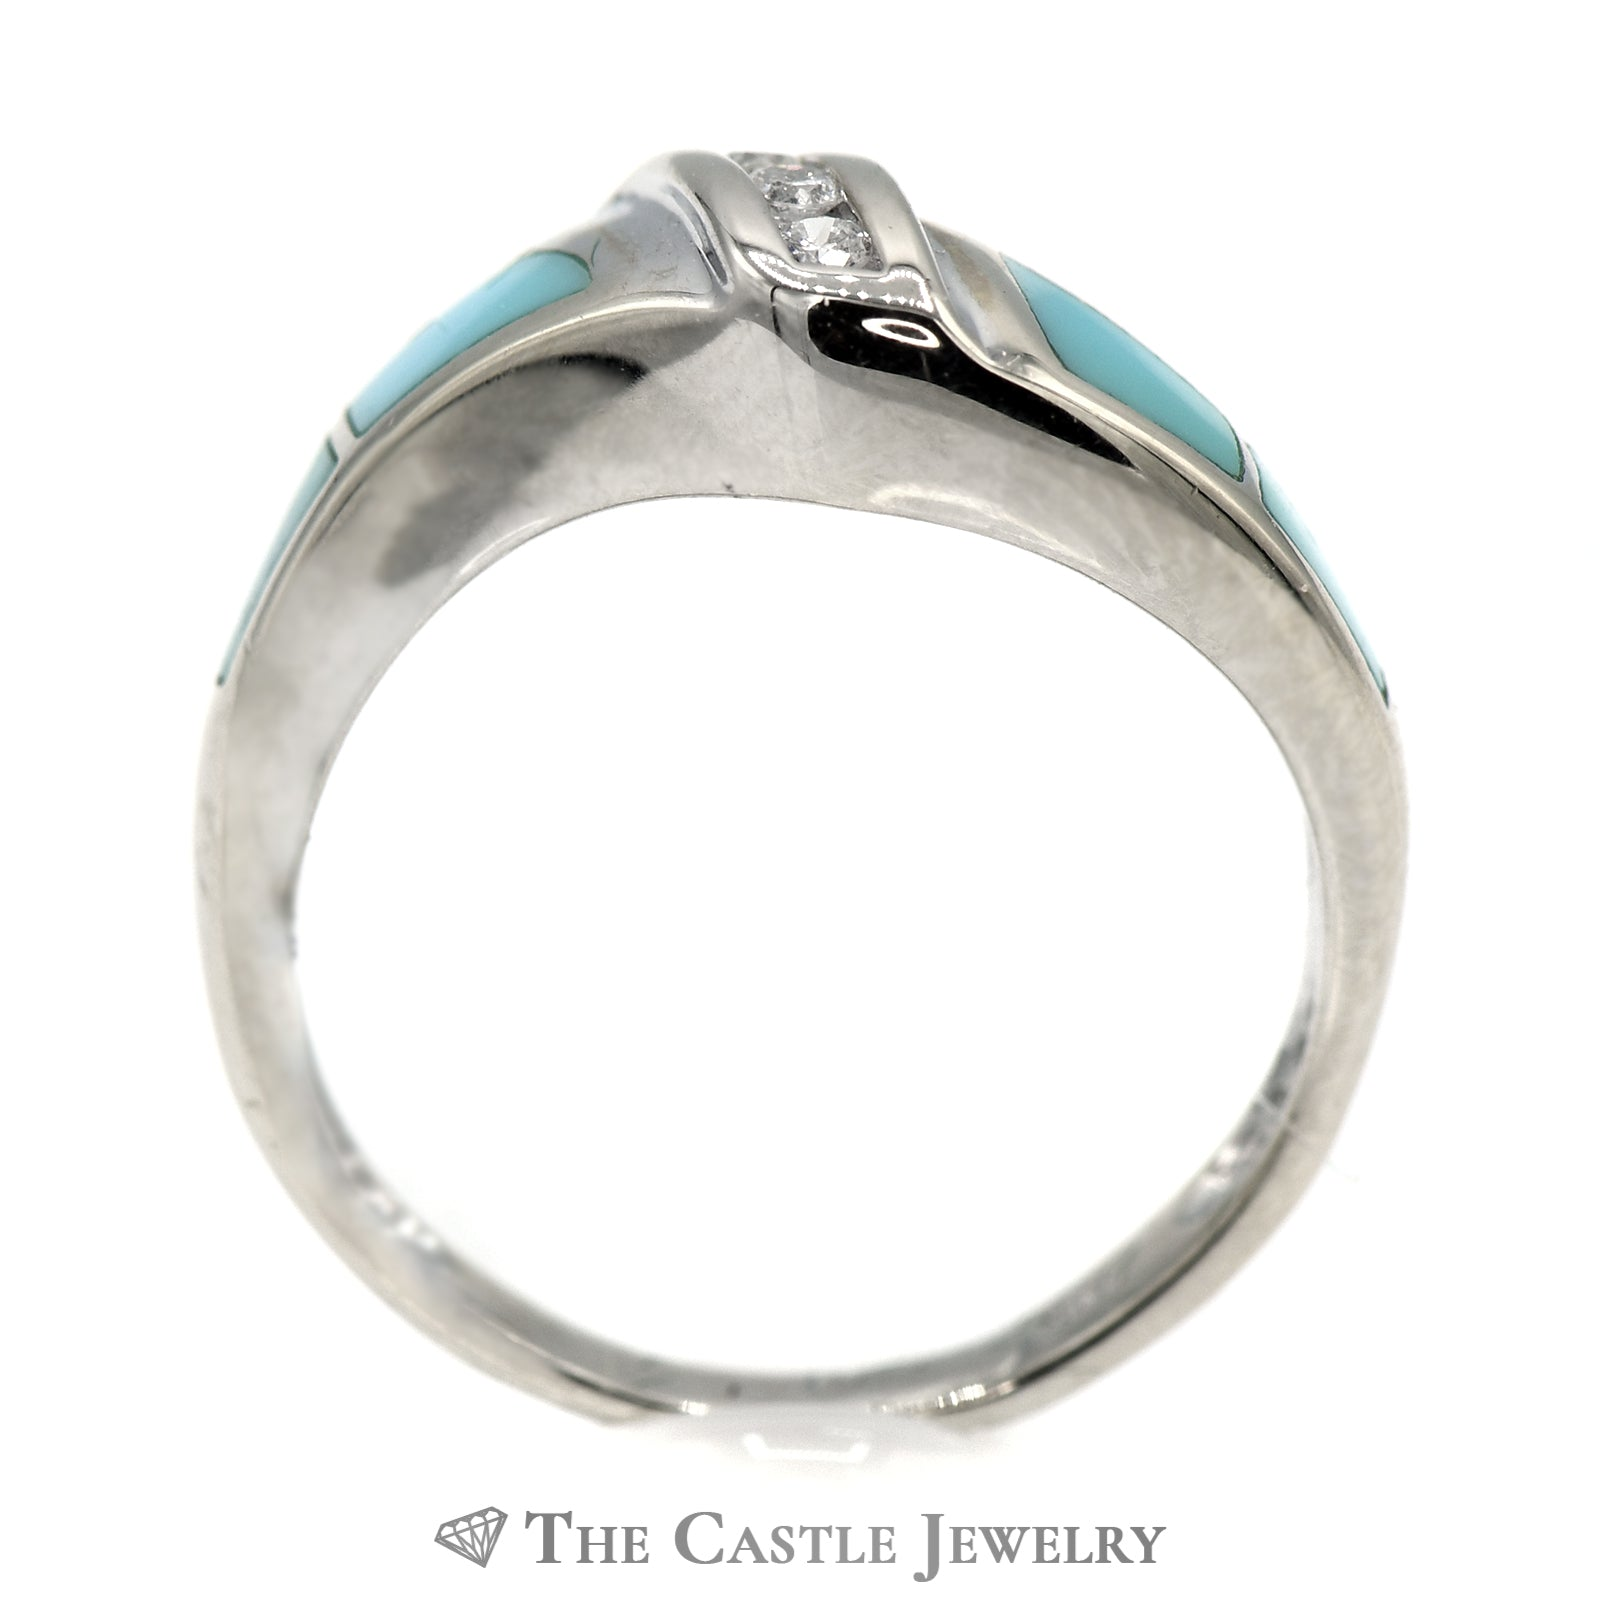 Triple Channel Set Diamond Band with Turquoise Inlay Accents in 14k White Gold-1